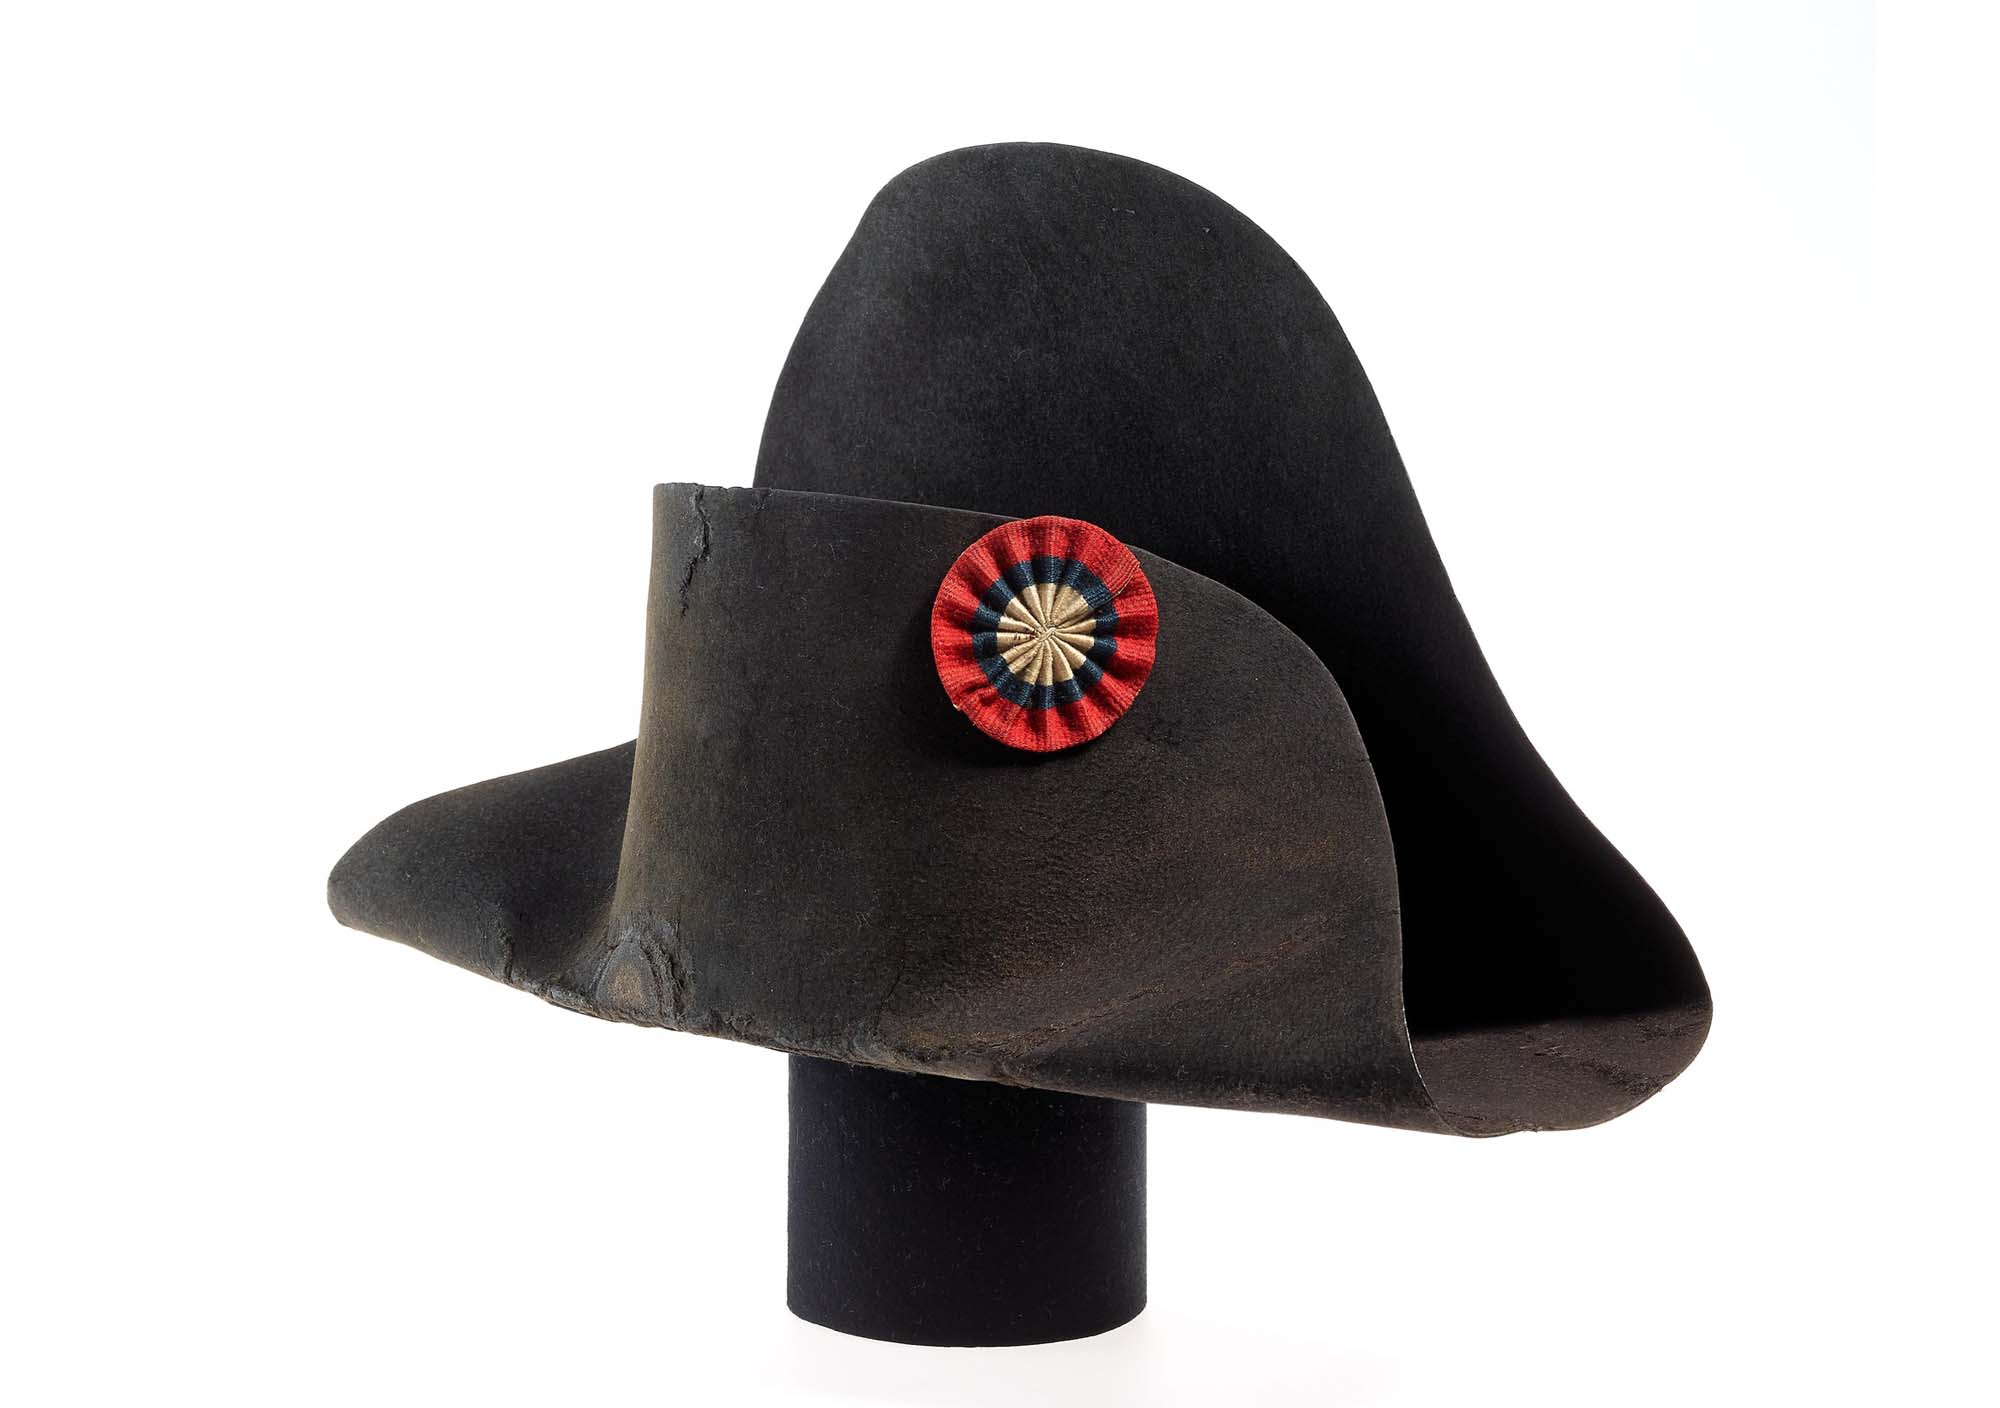 a photo of a bicorn hat with small rosette on it